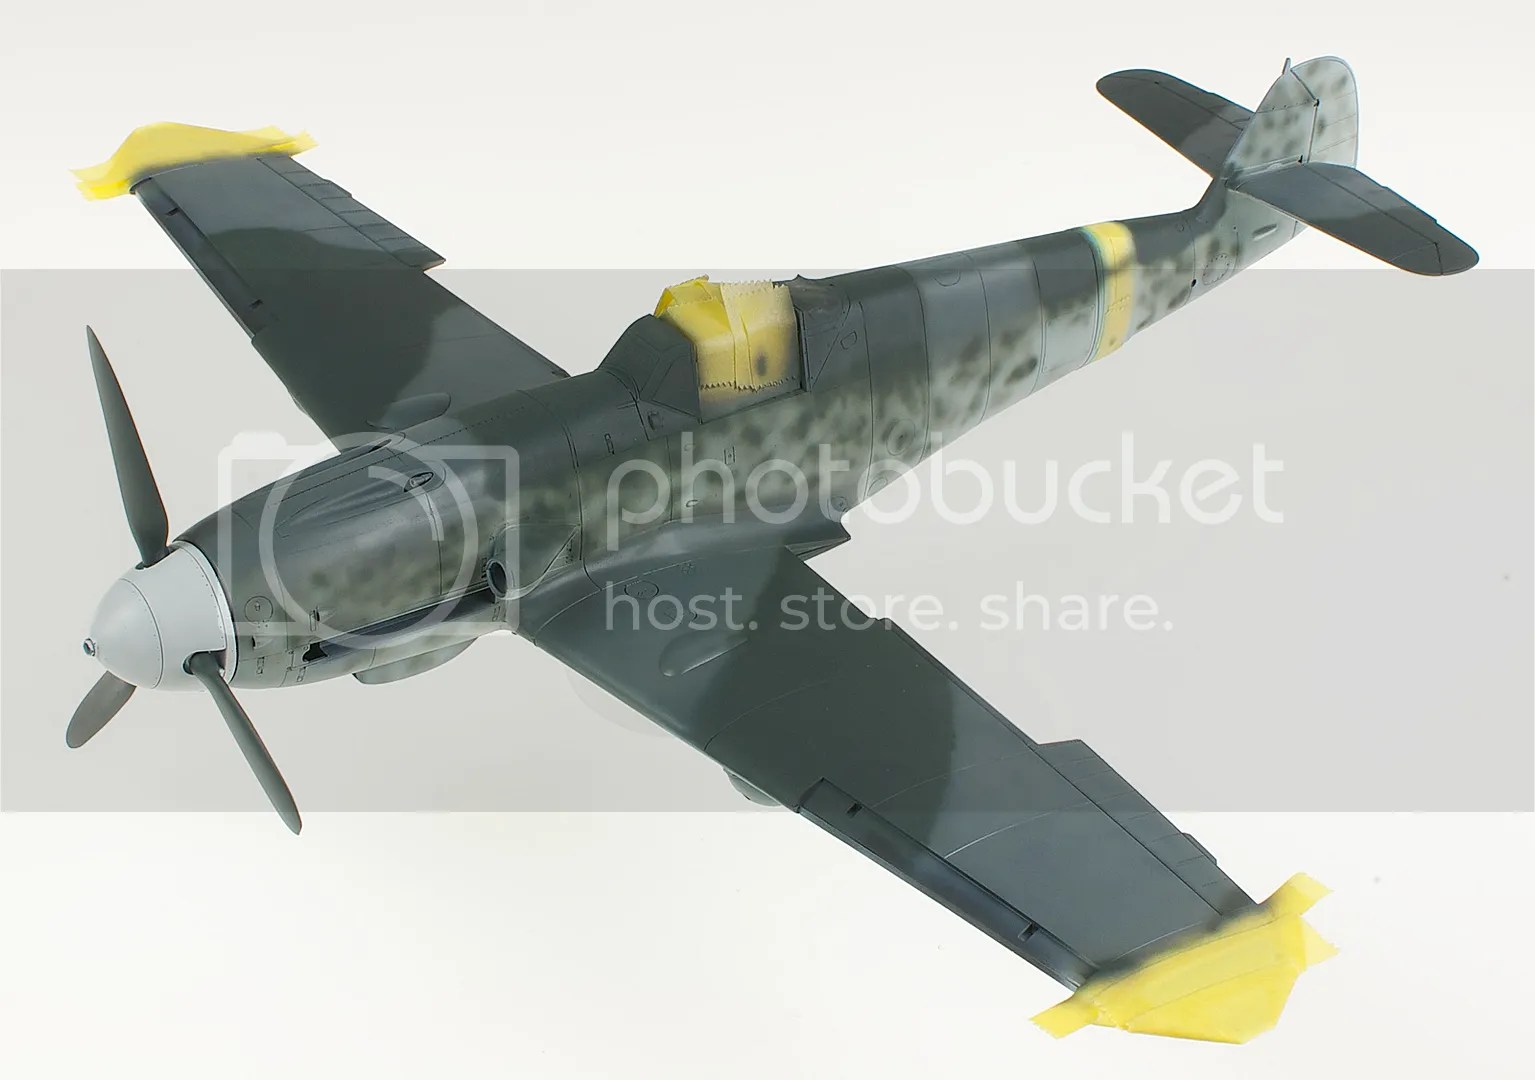 Bf 109G-4 08-22-2013 3 photo file_zpscf93f2dd.jpg